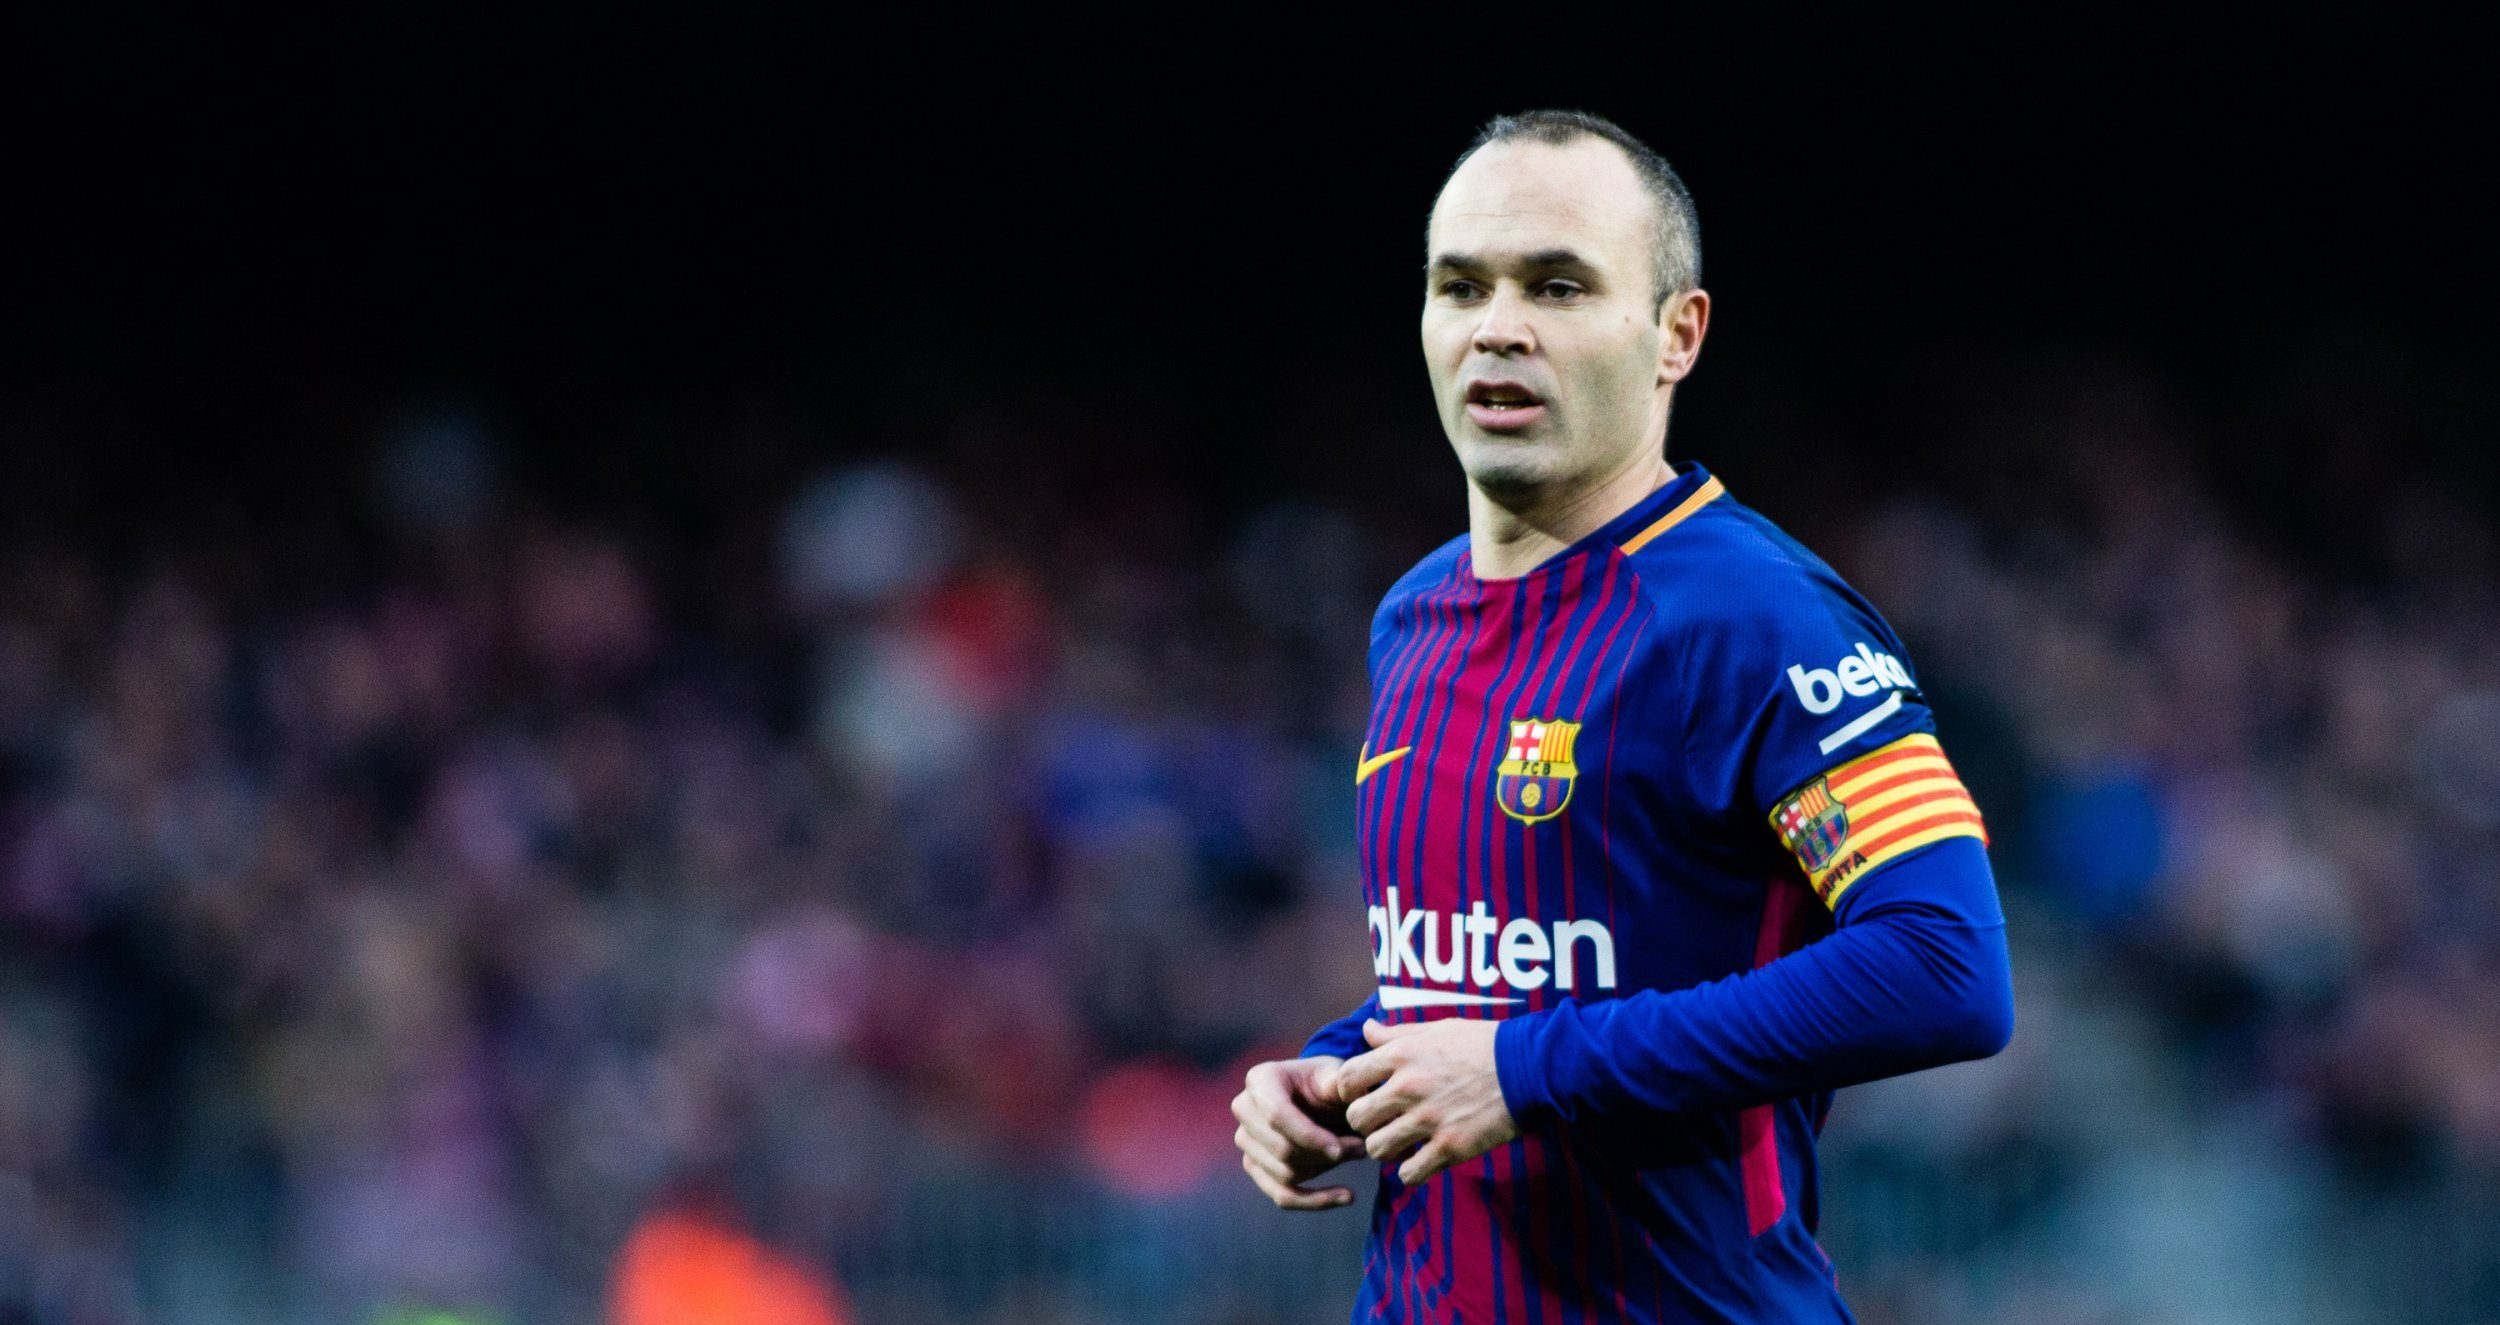 Andres Iniesta confirms discussion with Pep Guardiola over potential move to Man City